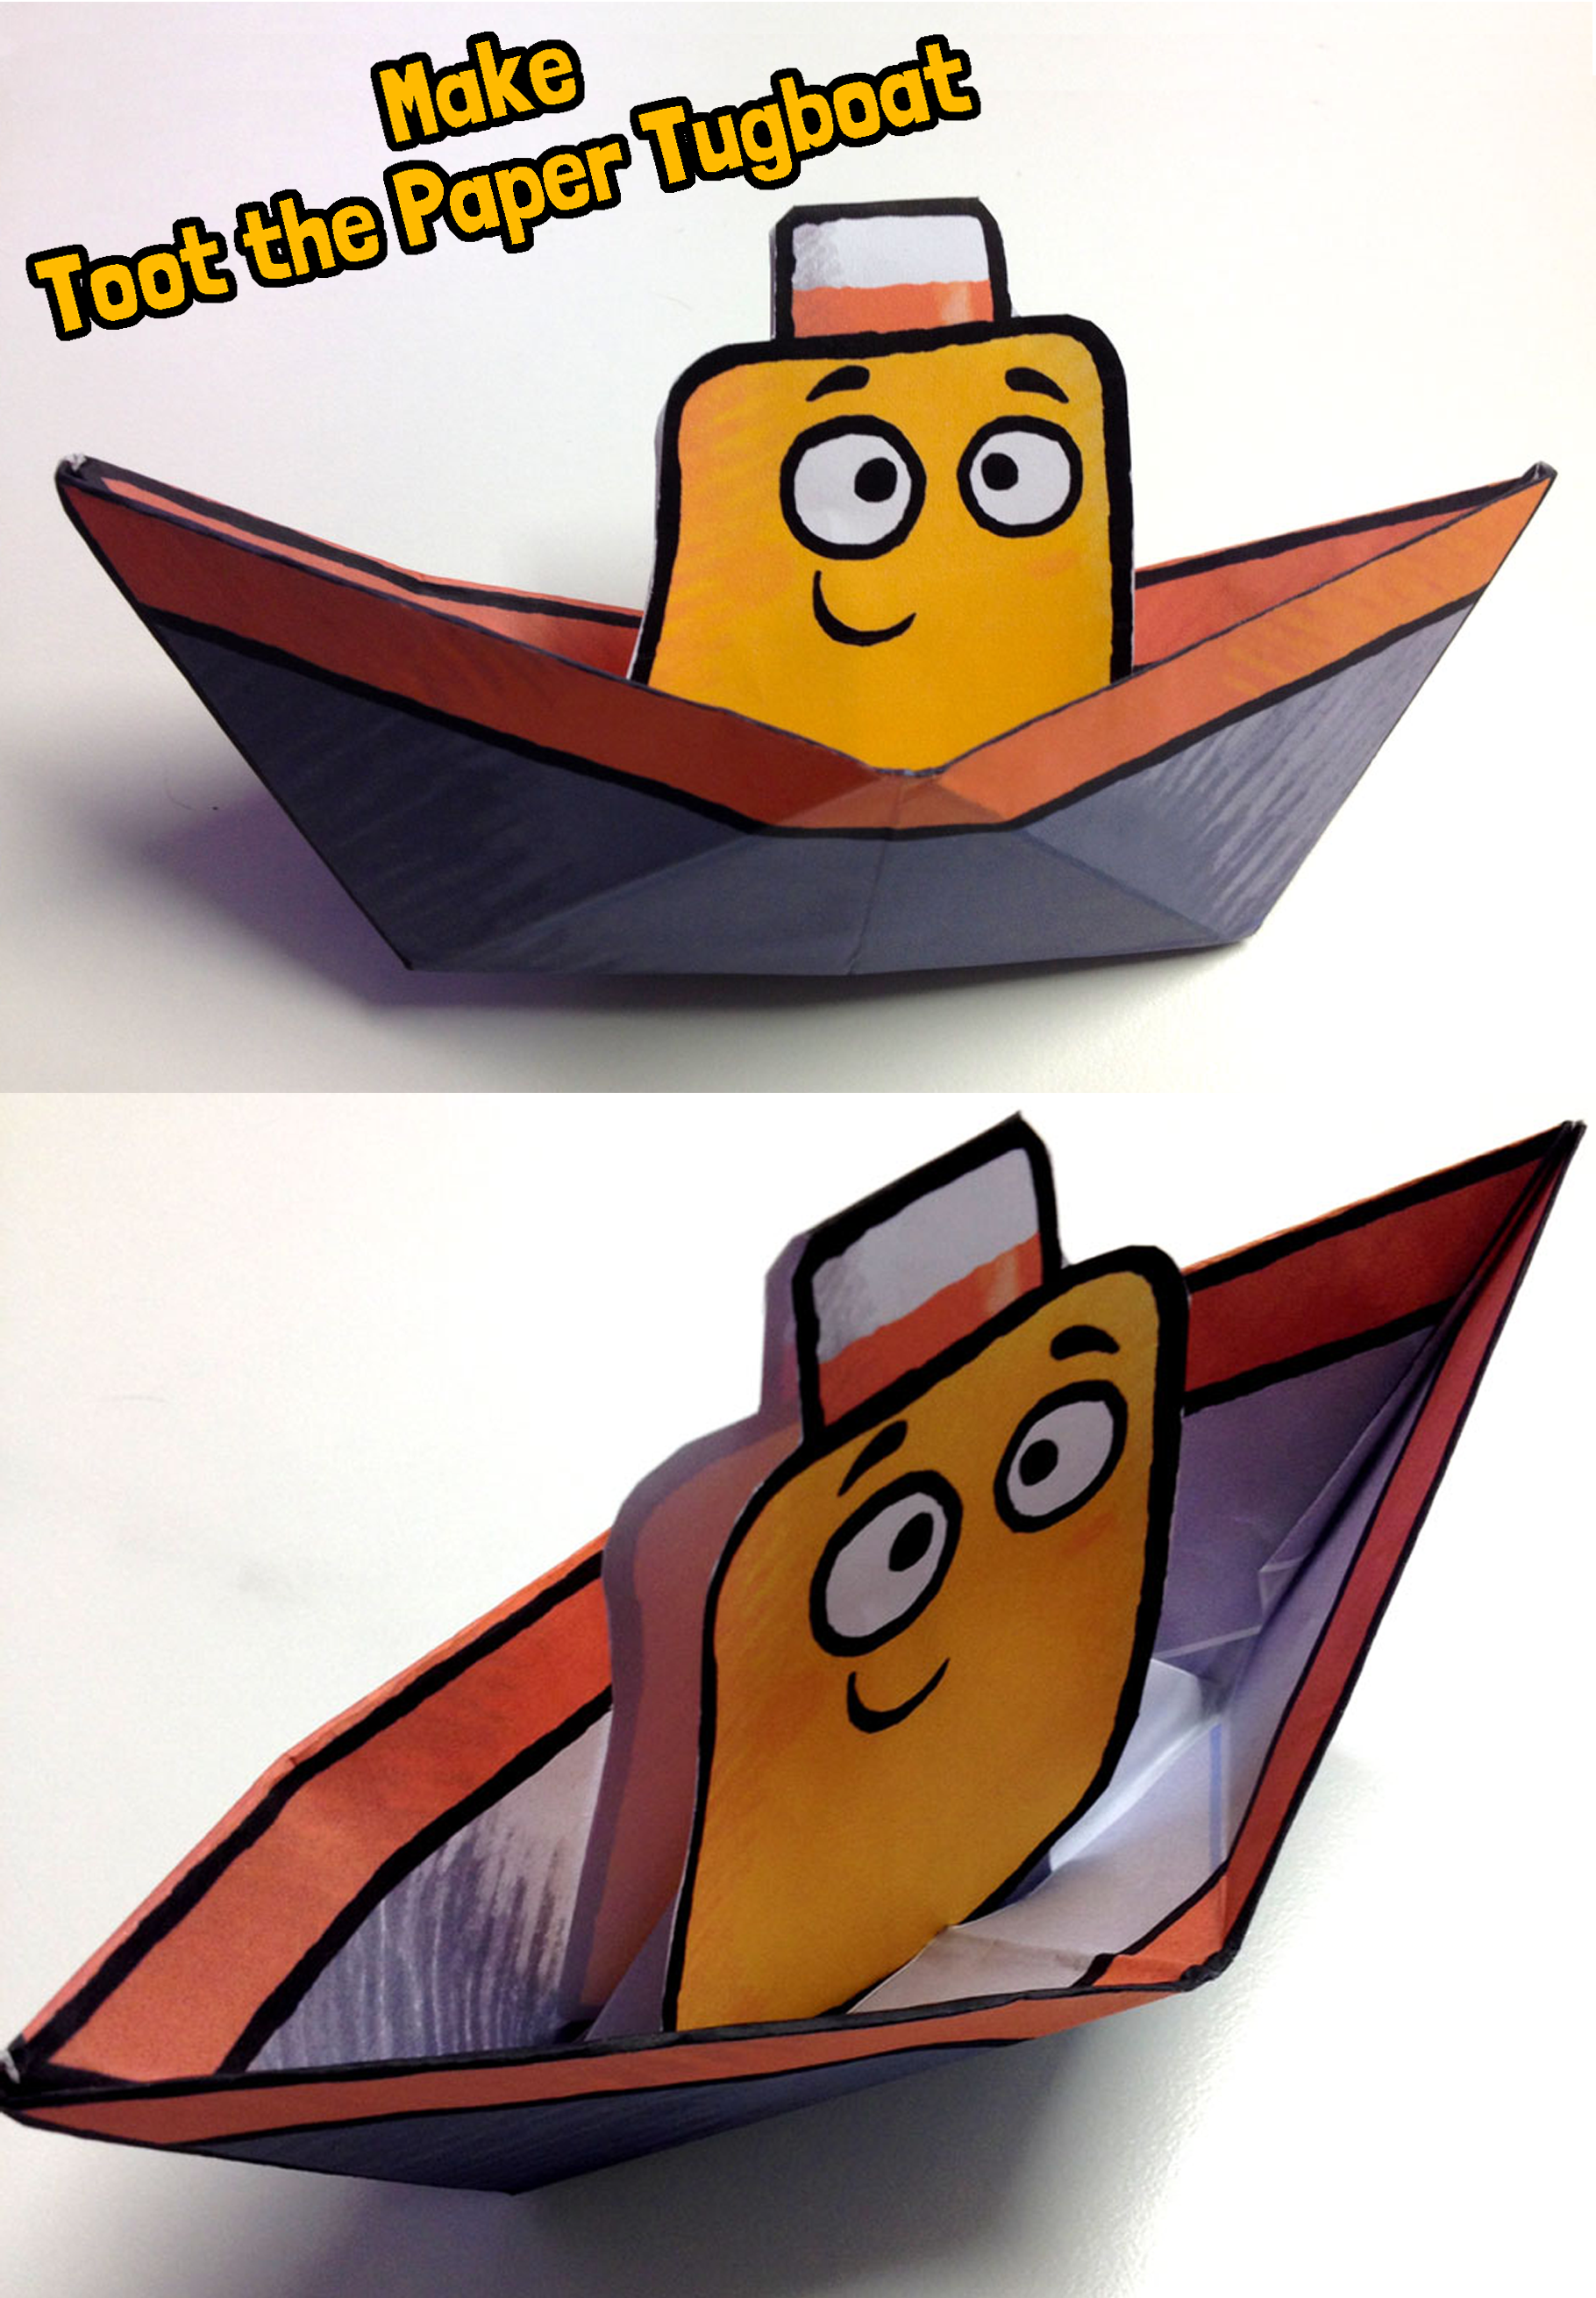 1820x2620 Make a Toot the Tiny Tugboat paper boat! Fun paper craft for